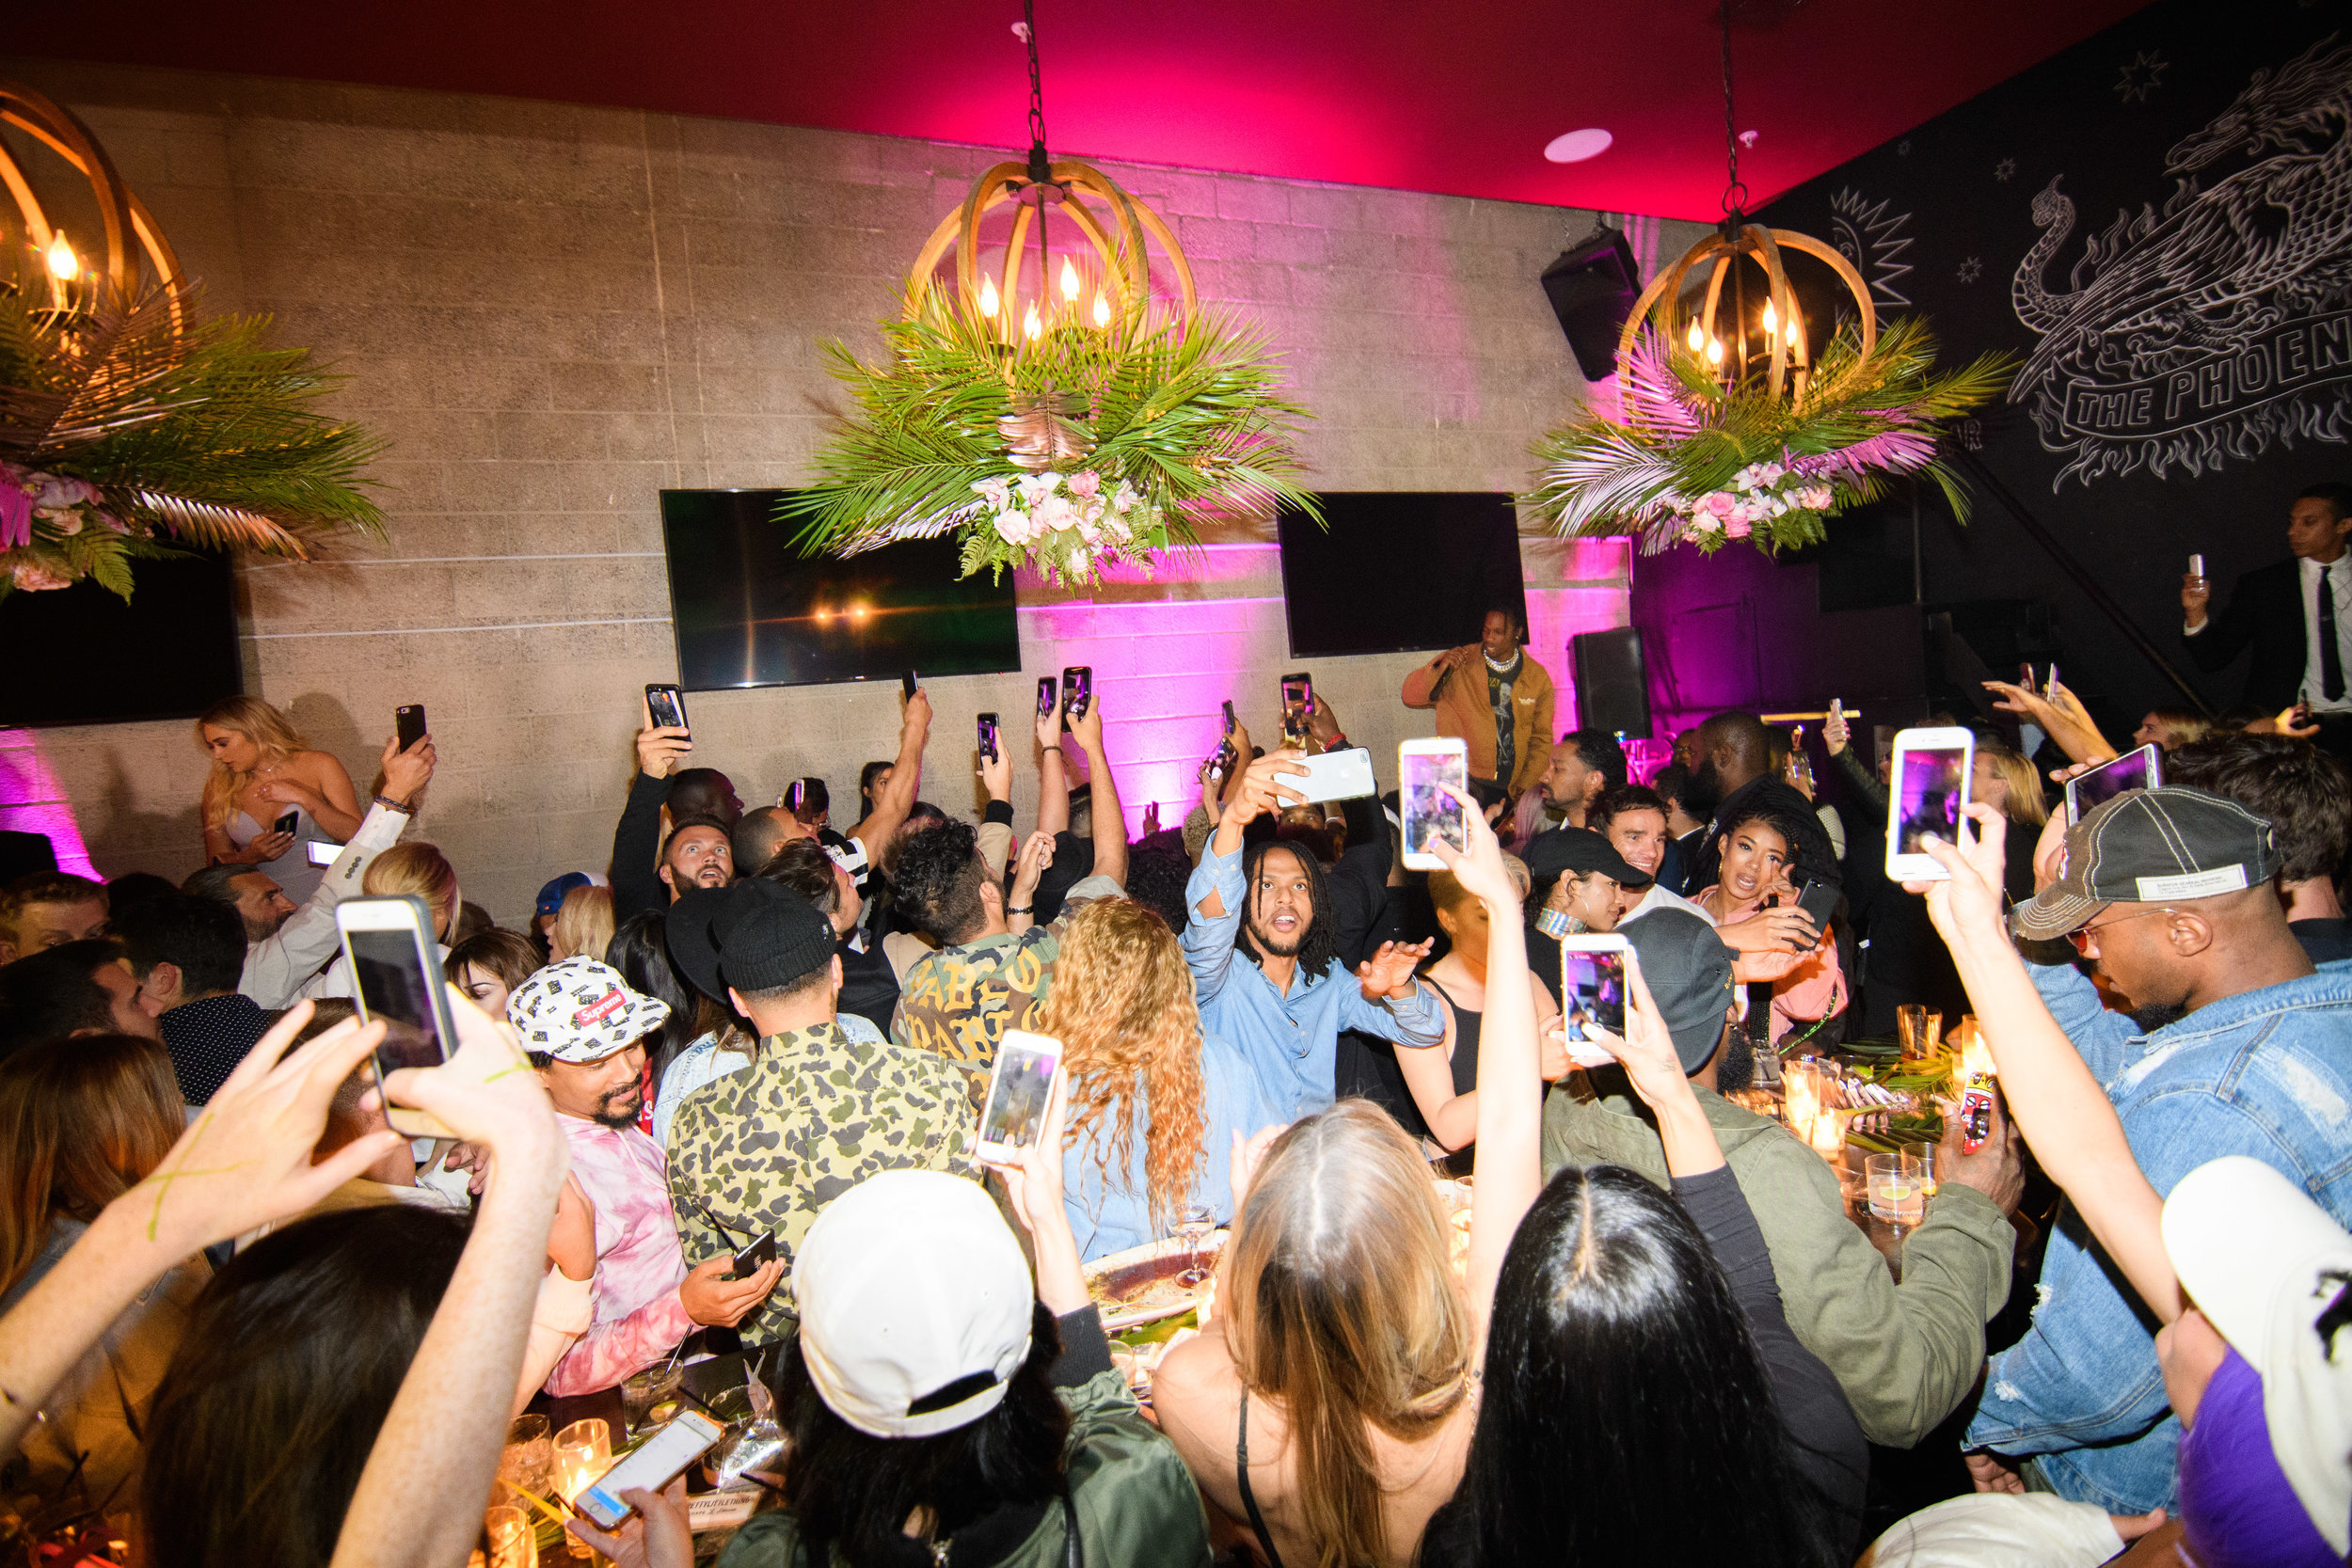 PrettyLittleThing New PLT Shape Collection with Stassie Celebrity Launch Party the crowd goes wild taking pictures watching Travis Scott.jpg